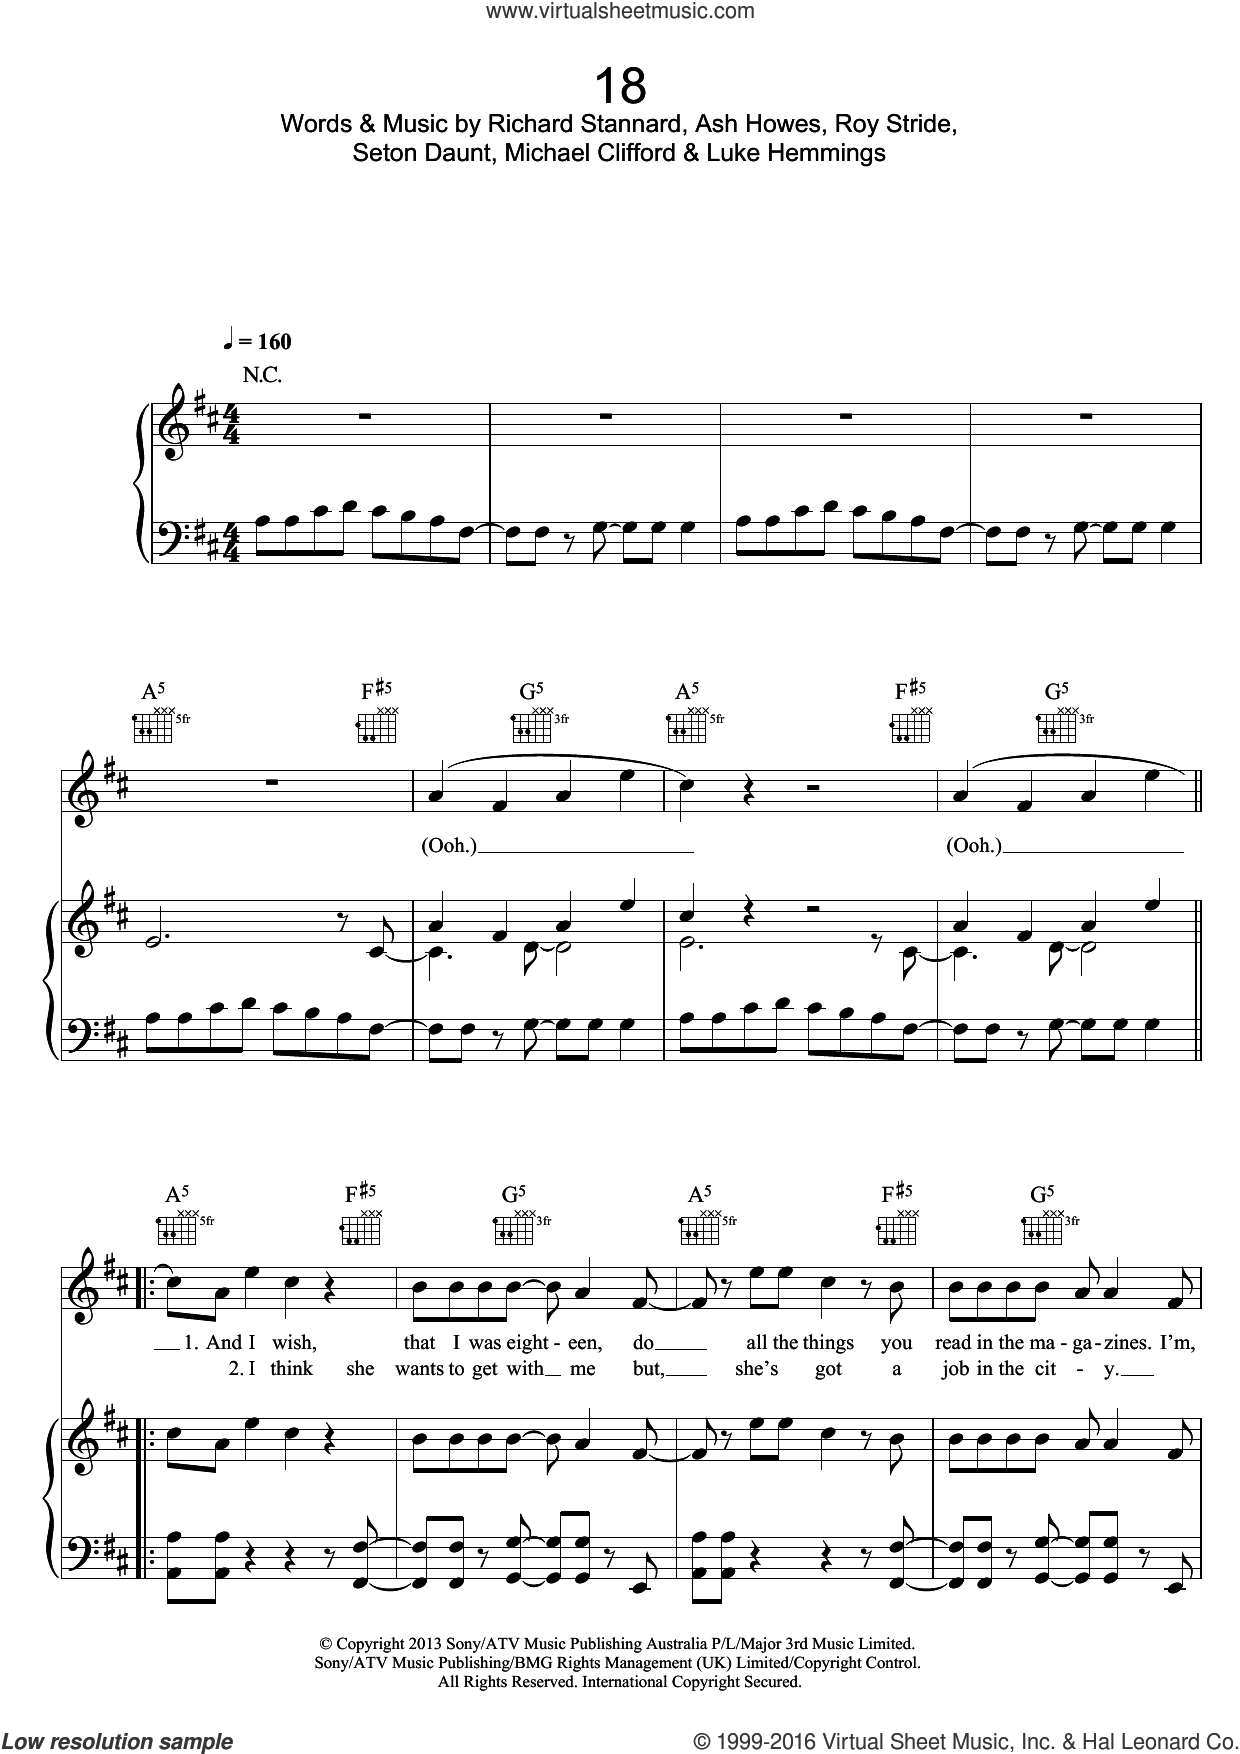 18 sheet music for voice, piano or guitar by Ash Howes